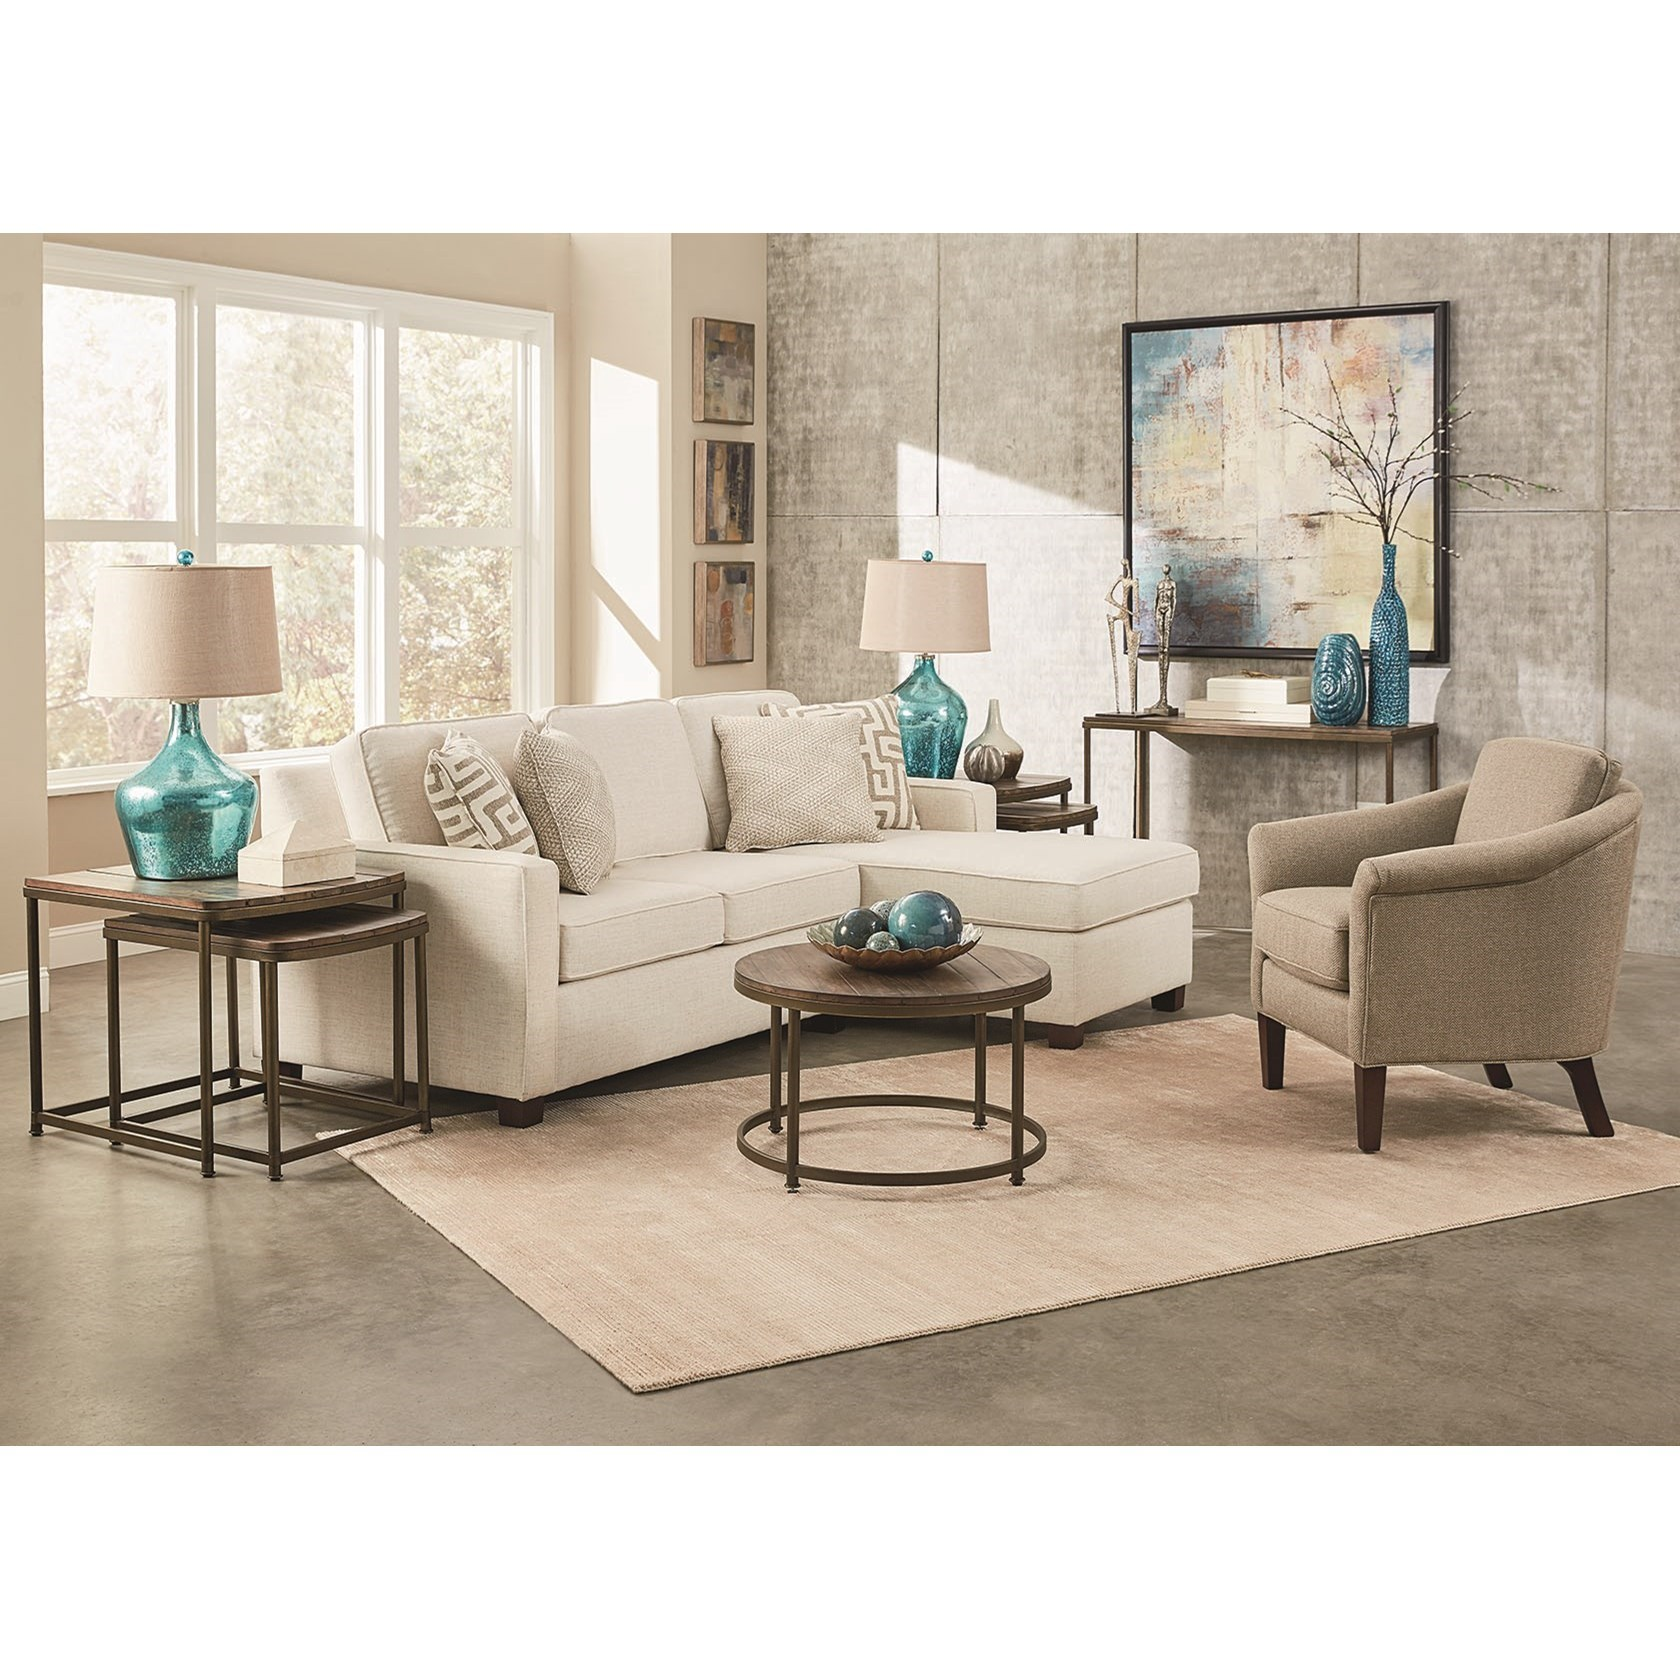 England Metromix River West Sofa With Chaise Colder 39 S Furniture And Appliance Sofa Sectional